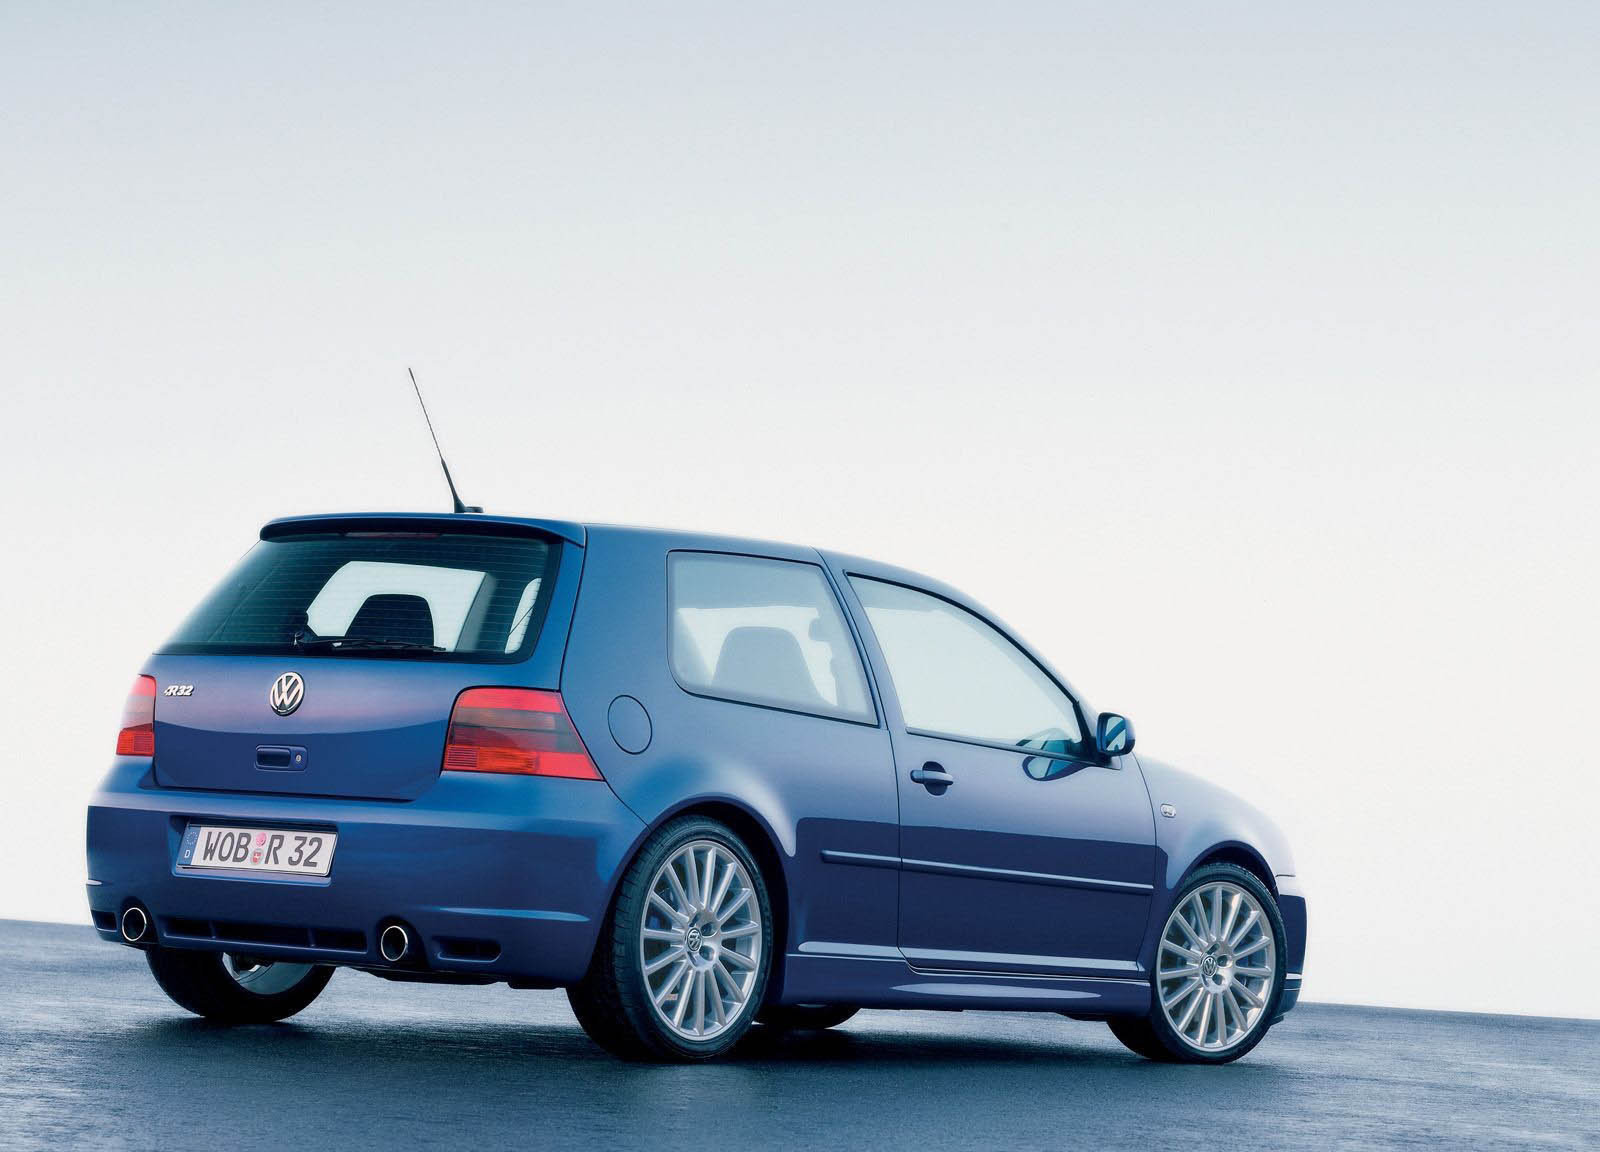 2003 volkswagen golf r32 picture 17019 car review top speed. Black Bedroom Furniture Sets. Home Design Ideas